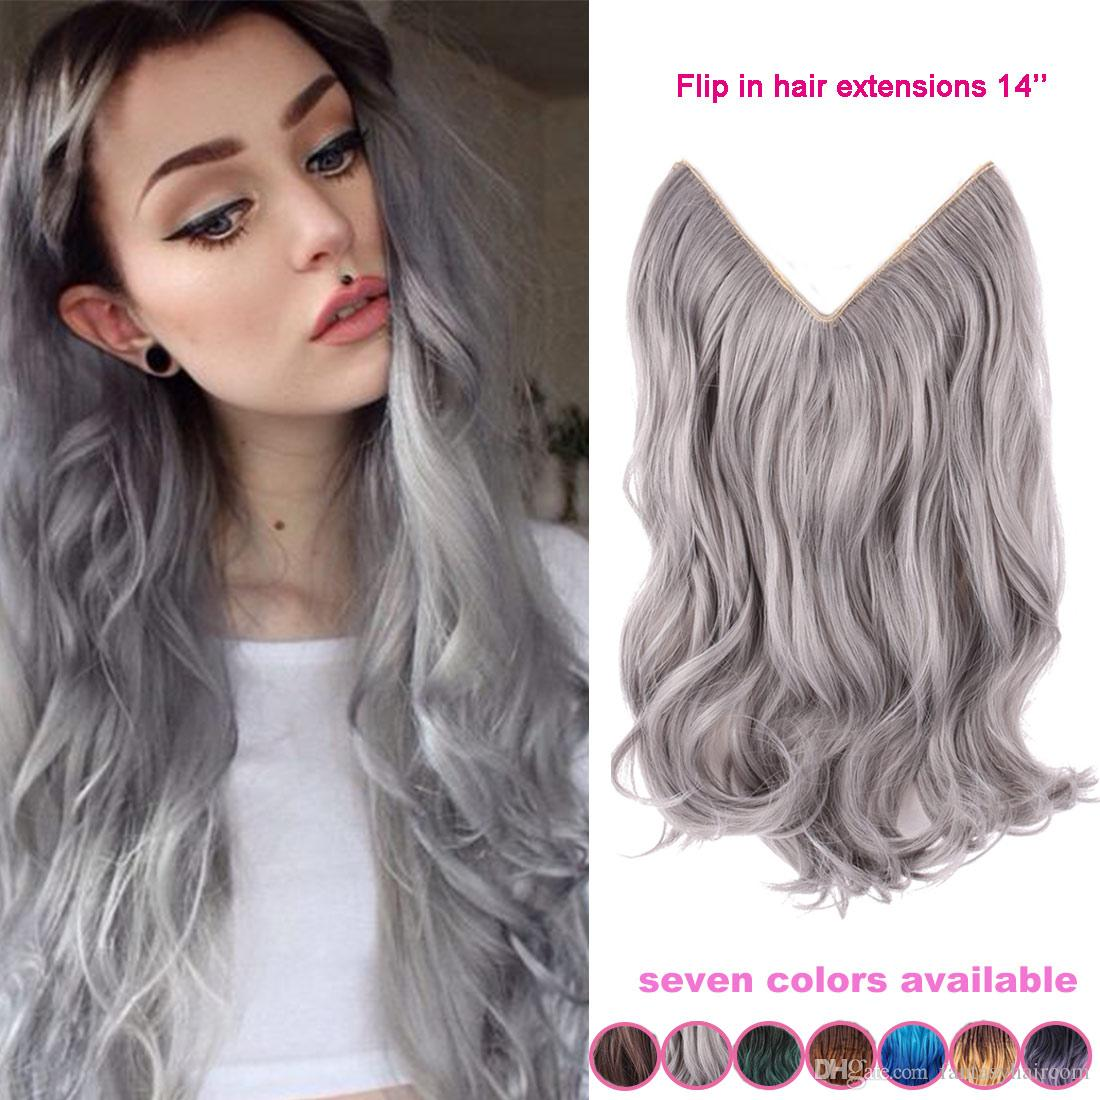 14 inch no clip hair flip halo hair extension silver gray hair 14 inch no clip hair flip halo hair extension silver gray hair brazilian natural wave halo hair extensions synthetic micro bead extensions black hair human pmusecretfo Choice Image